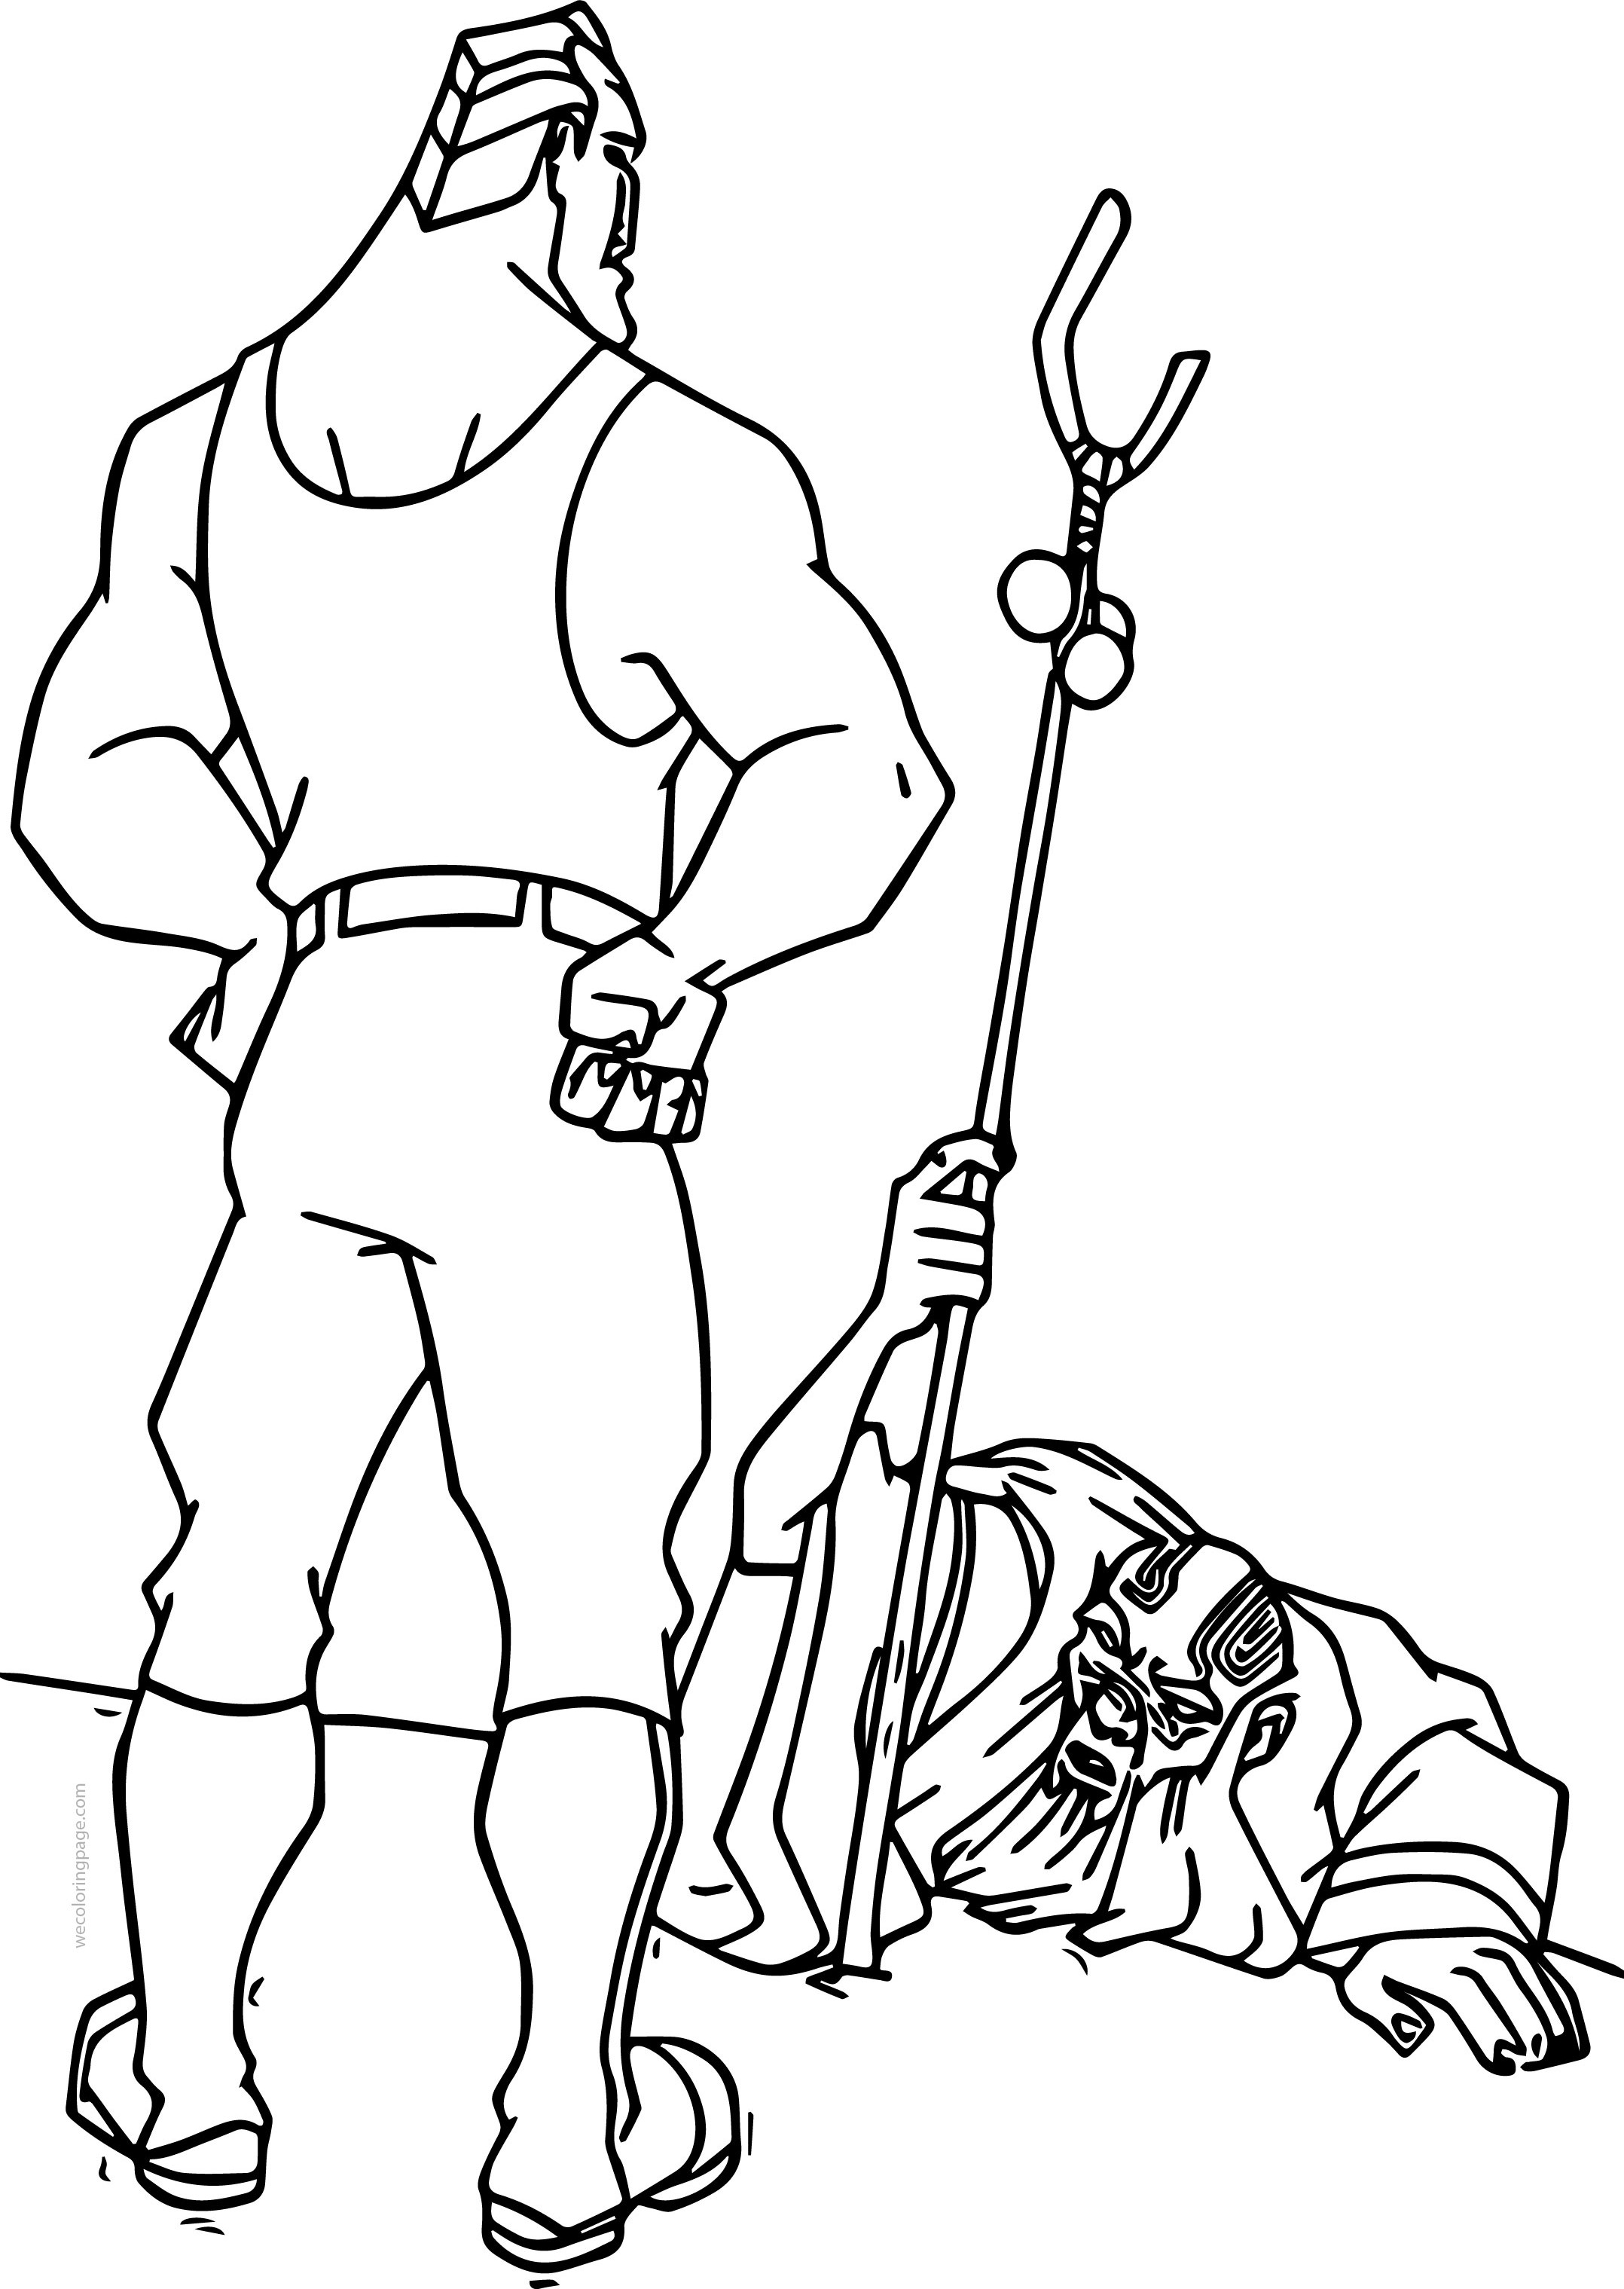 Atlantis The Lost Empire Cartoon Coloring Page